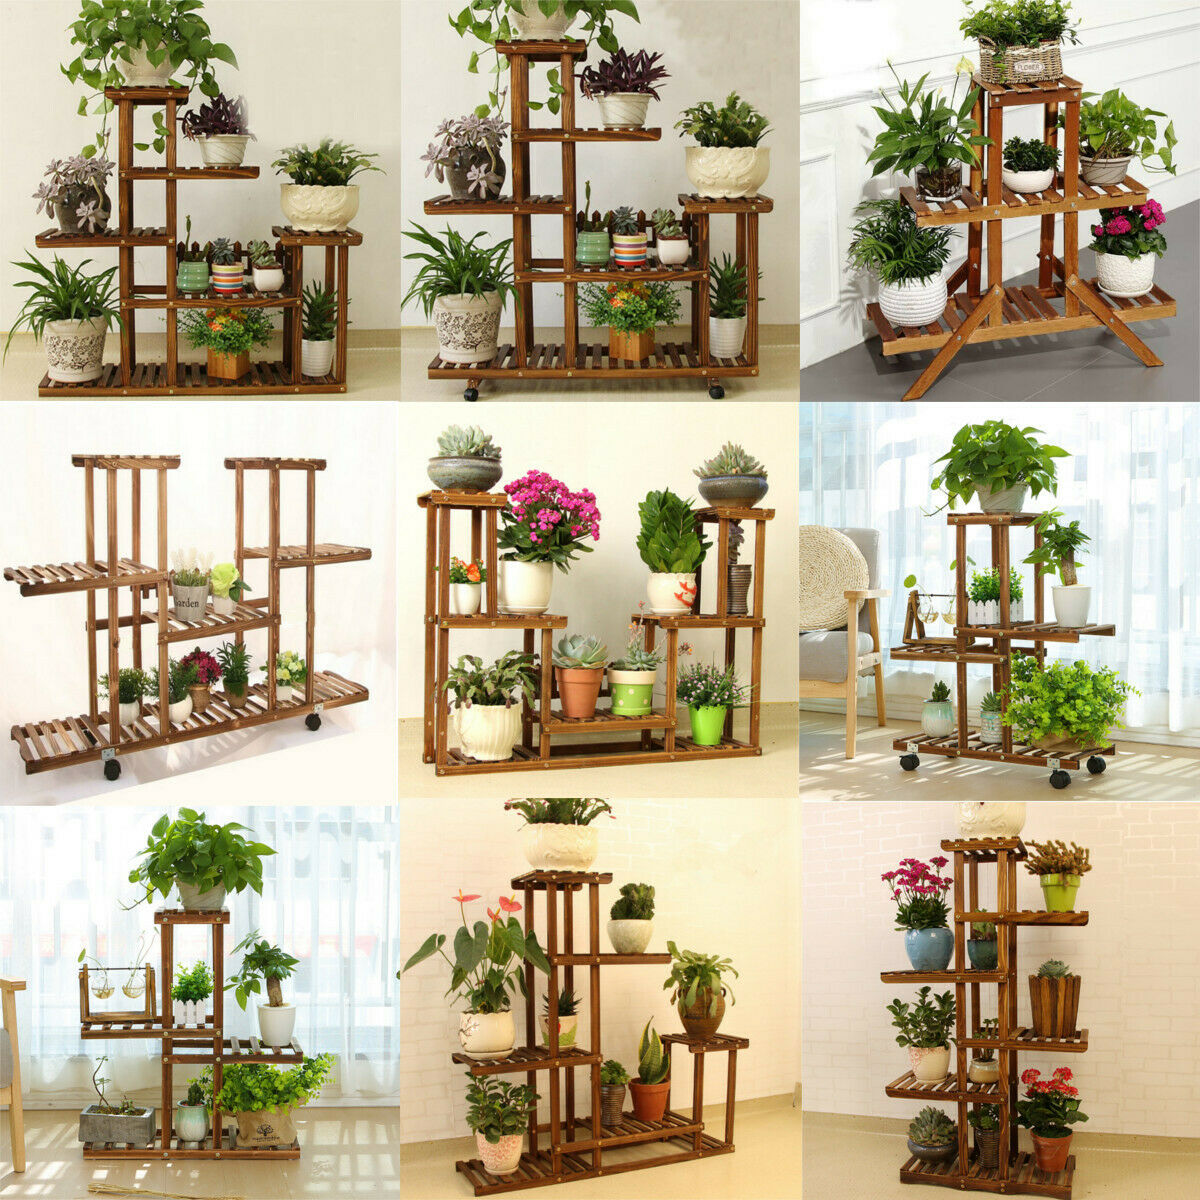 5 tag re plante fleur porte pots support jardin pr sentoir en bois bonsa eur 43 99. Black Bedroom Furniture Sets. Home Design Ideas